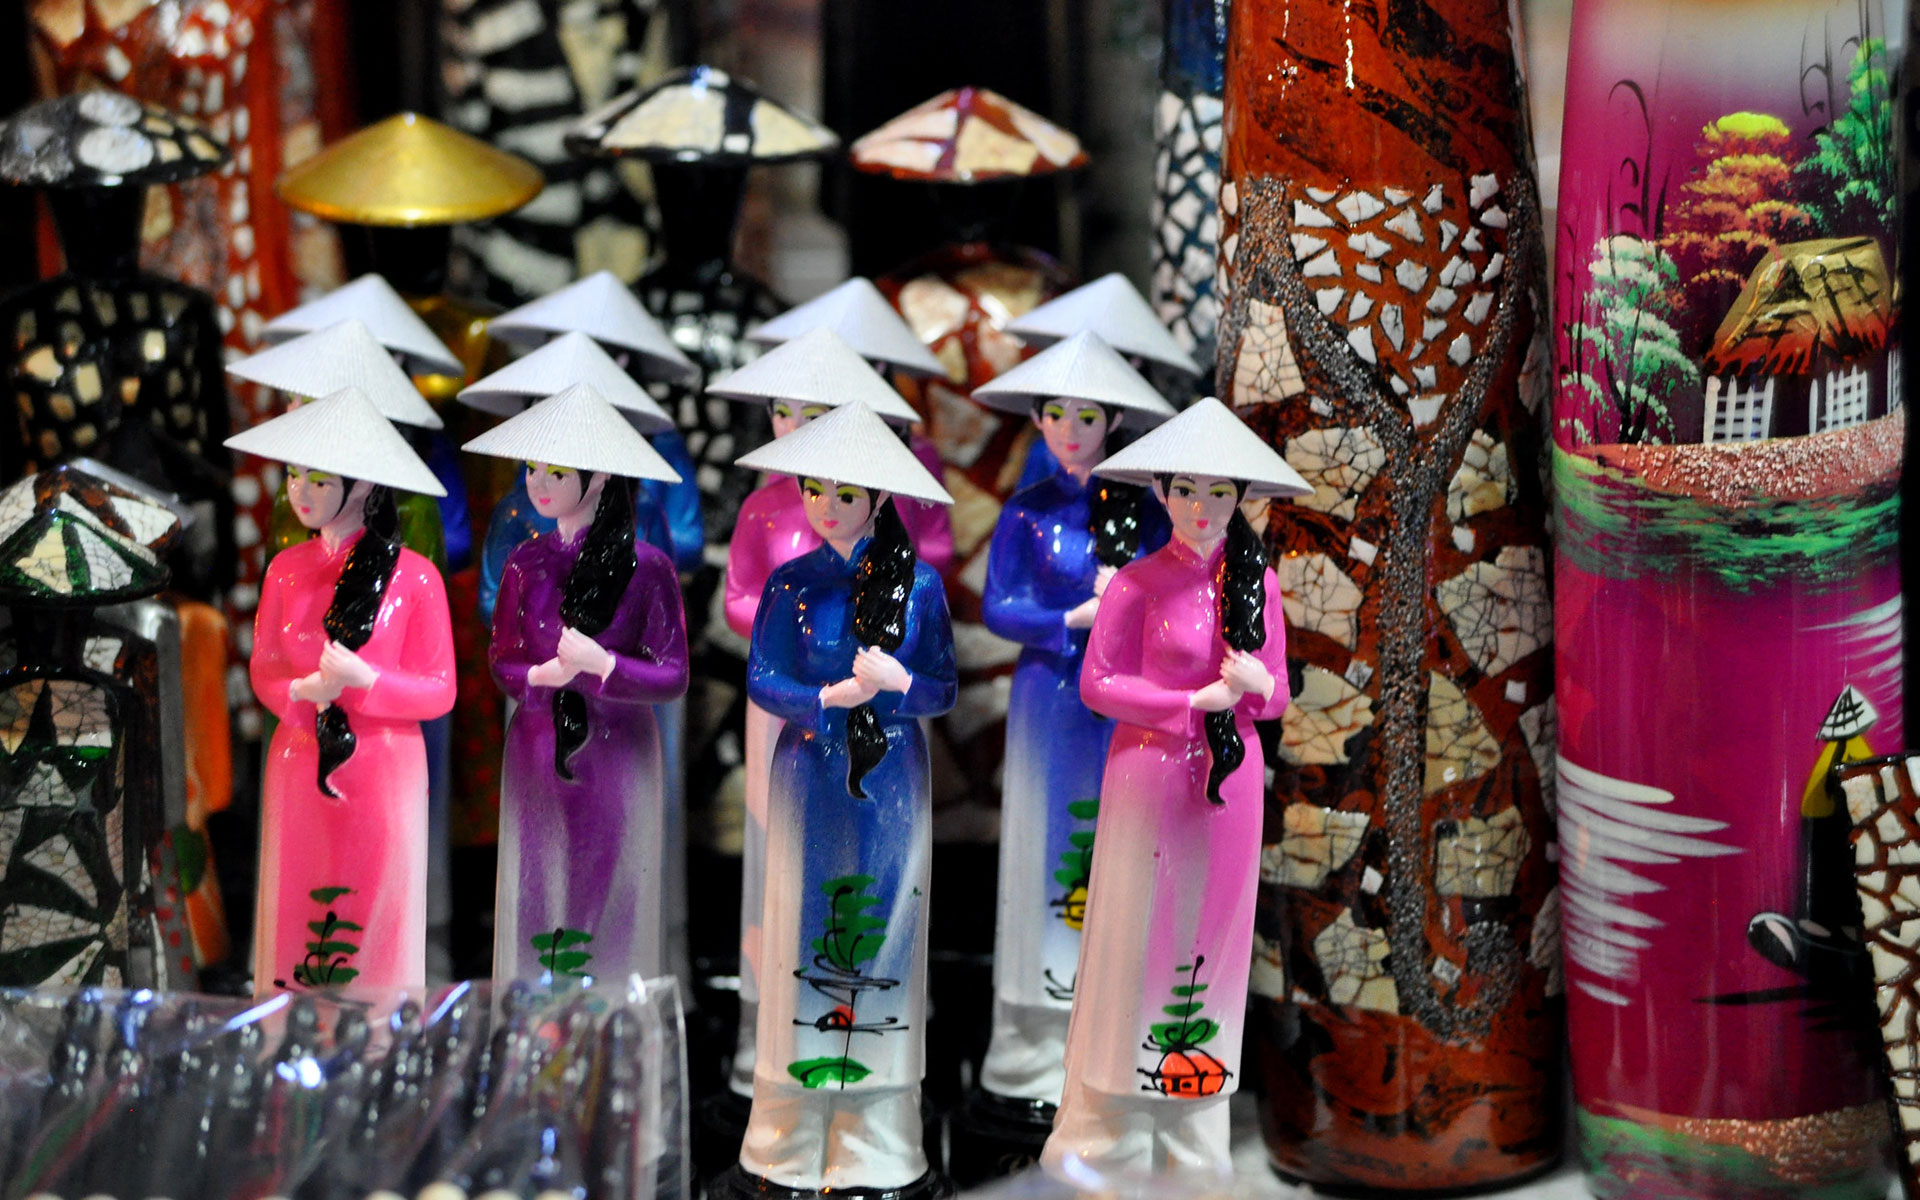 Another popular products at night market are ceramic items in traditional Vietnamese images.